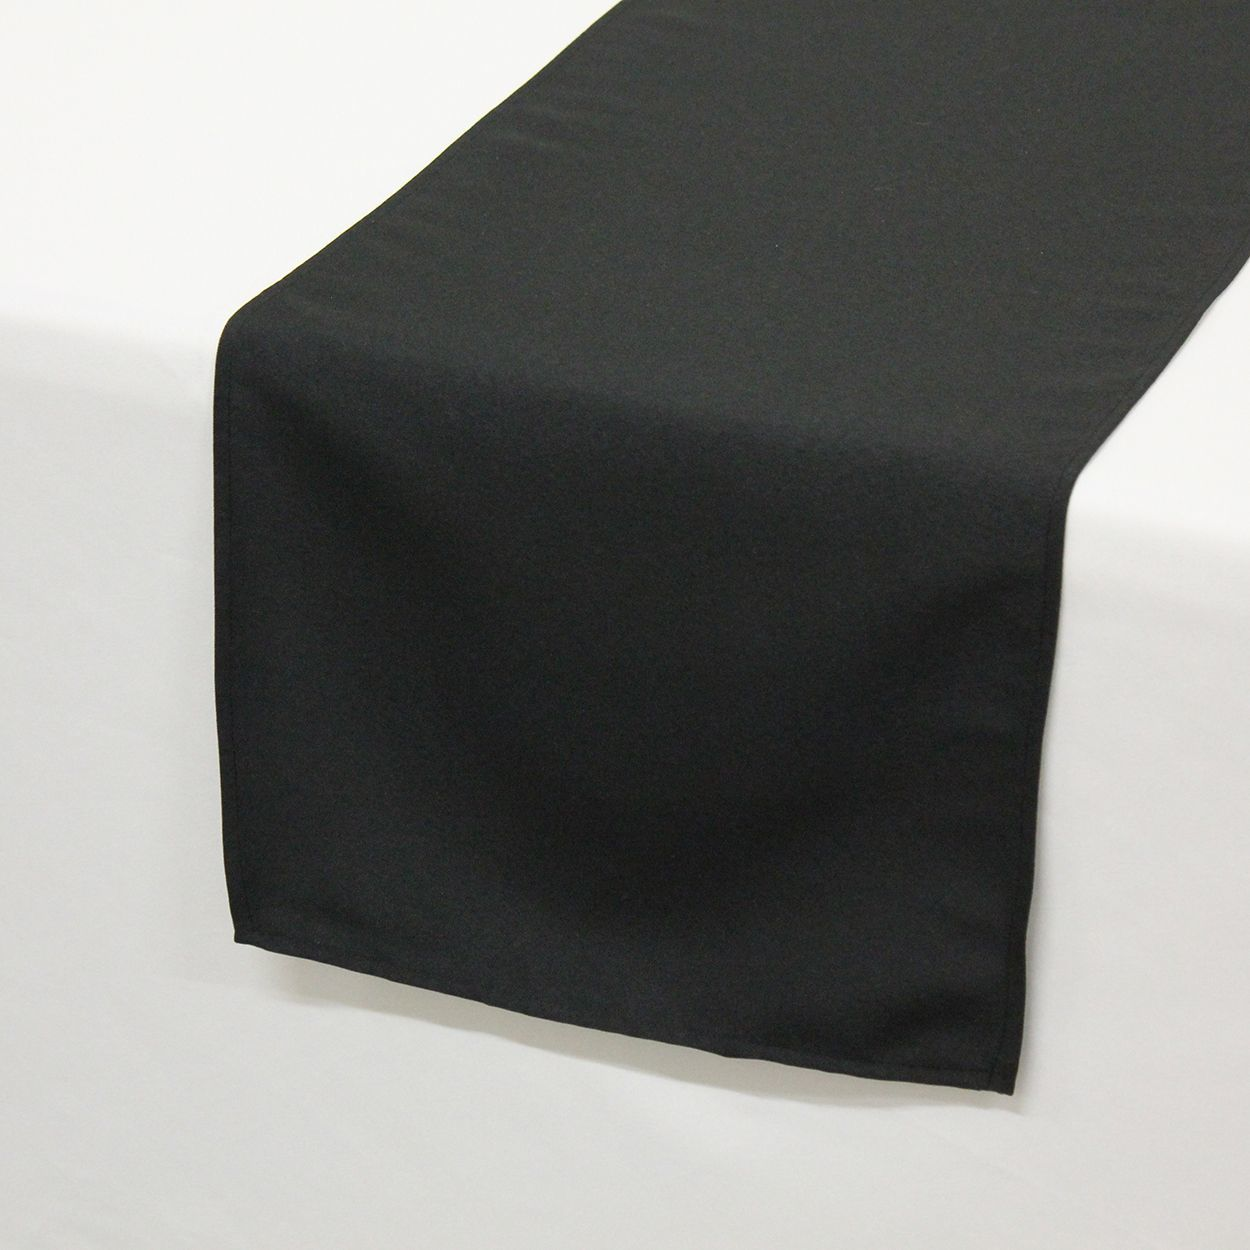 inch polyester table runners black for weddings bridal accent runner small living furniture pier one seat cushions mirror side ikea round marble coffee cream coloured tables